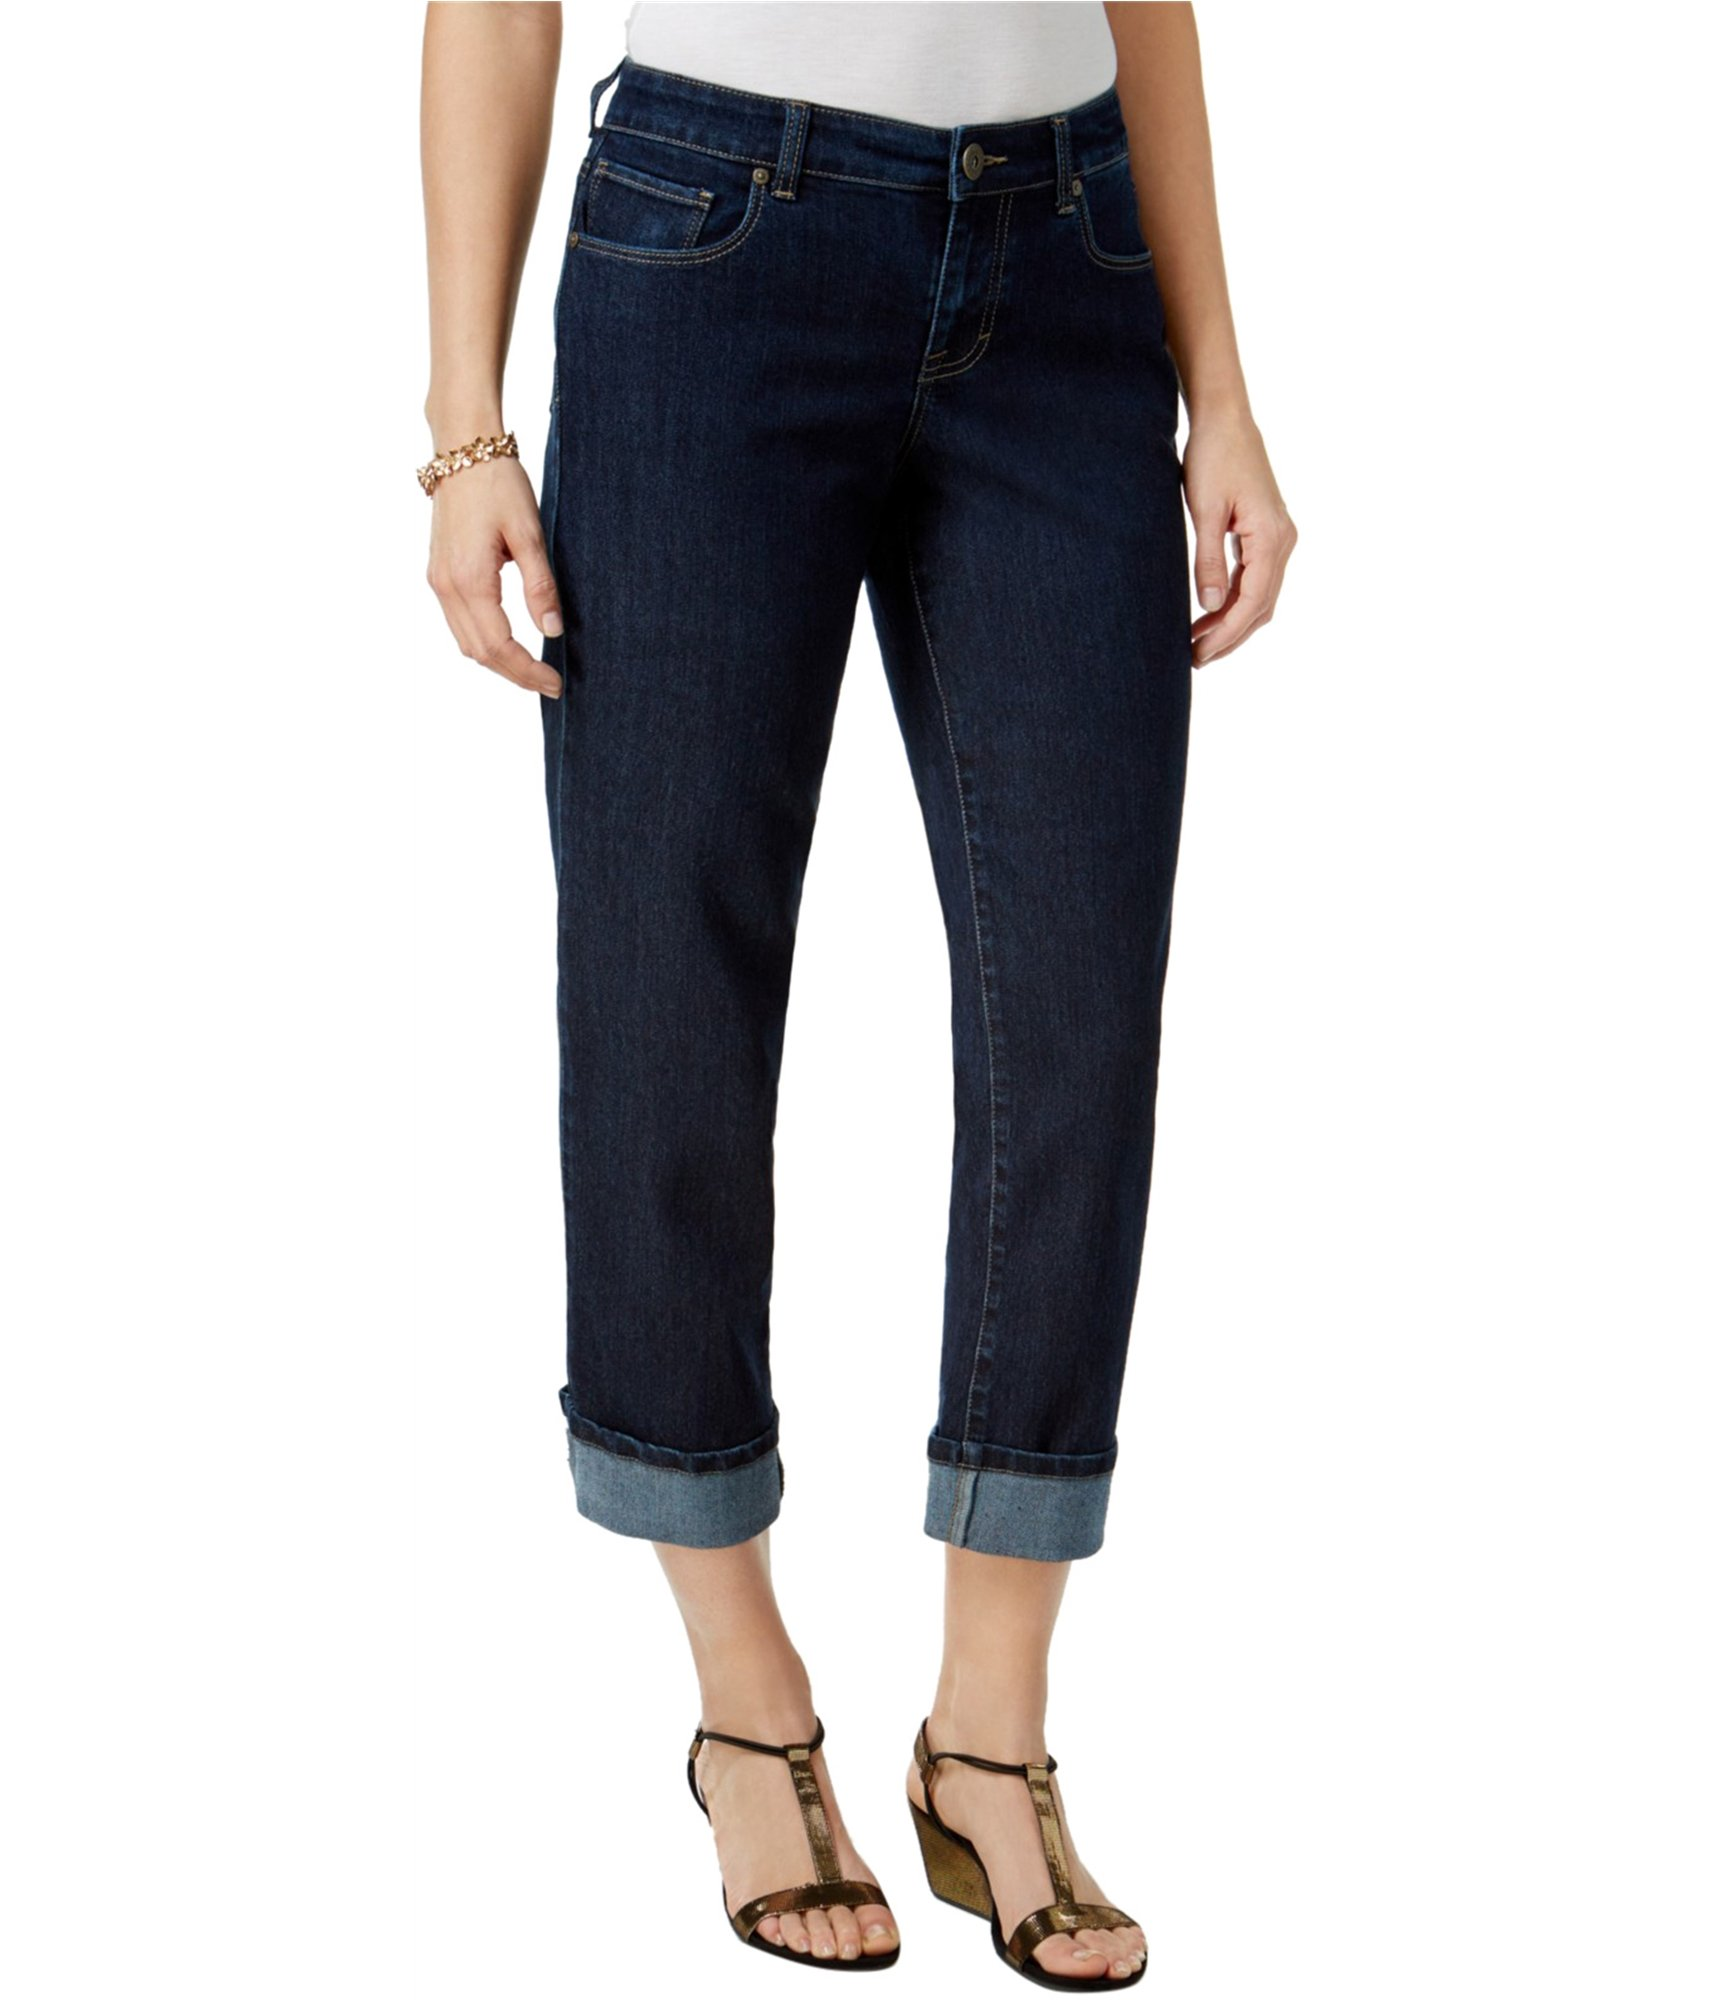 Style & Co. Curvy Cuffed Capri Jeans (Caneel, 6)